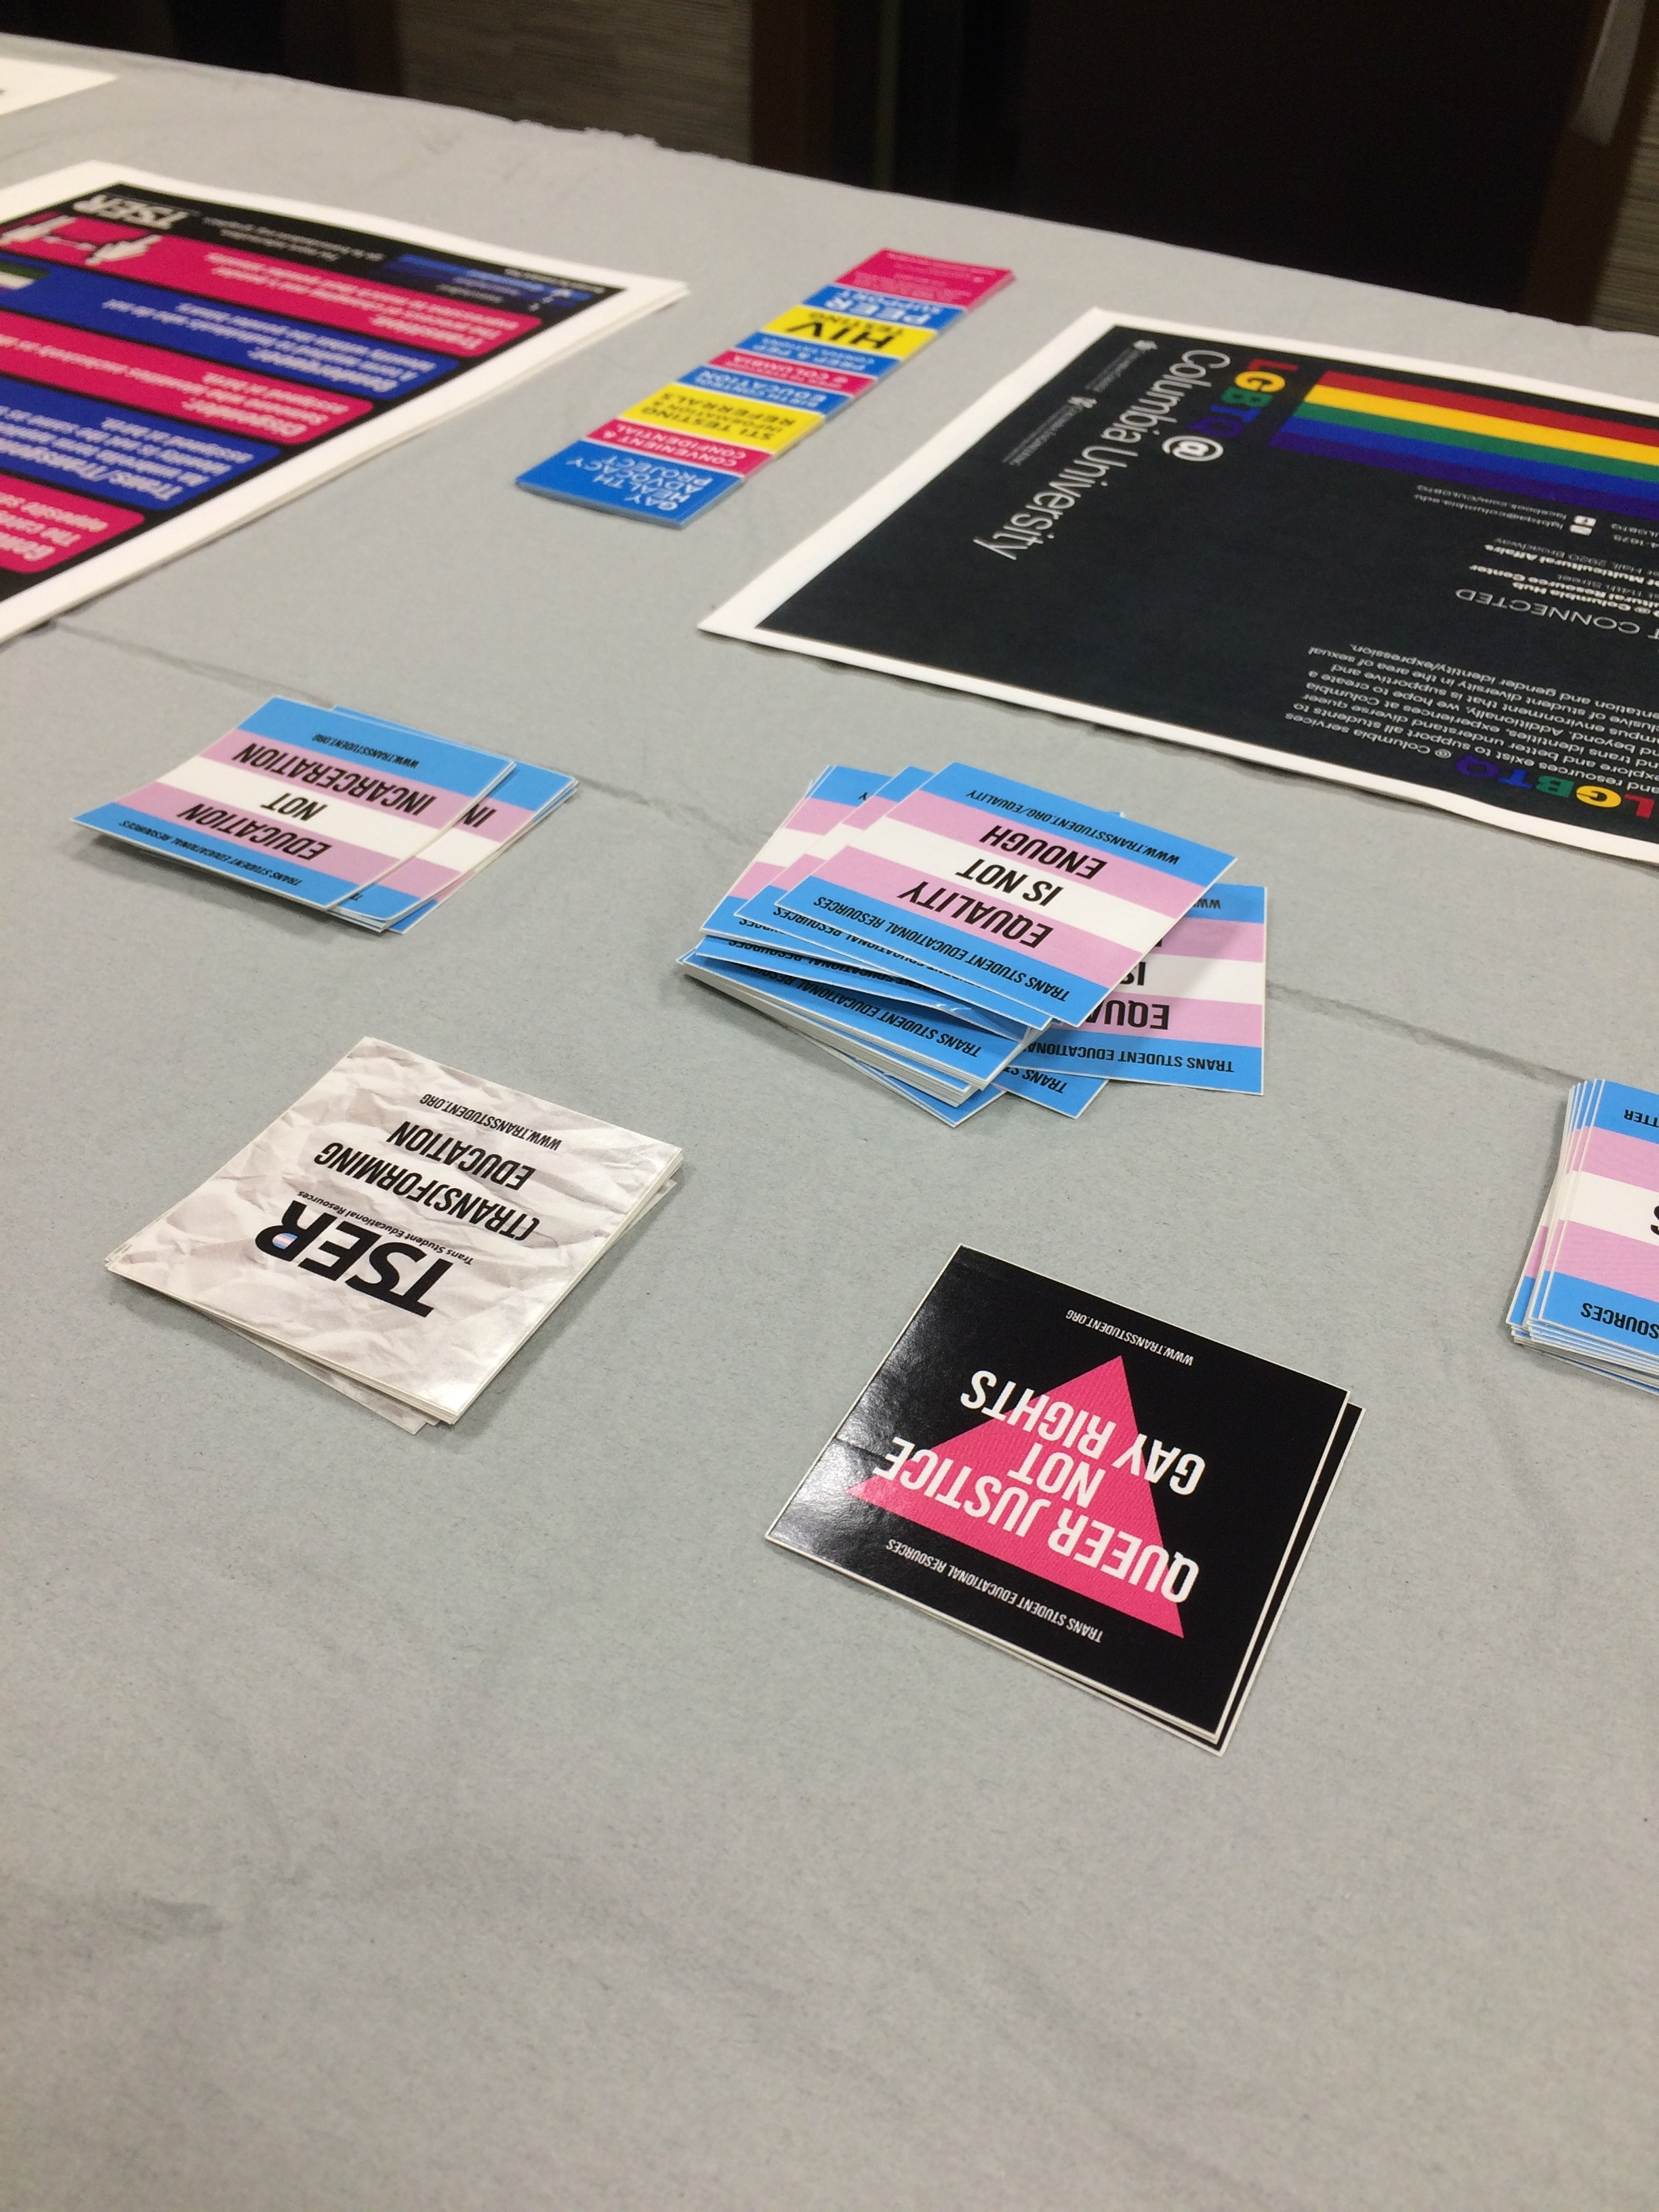 Tabling to combat transphobia